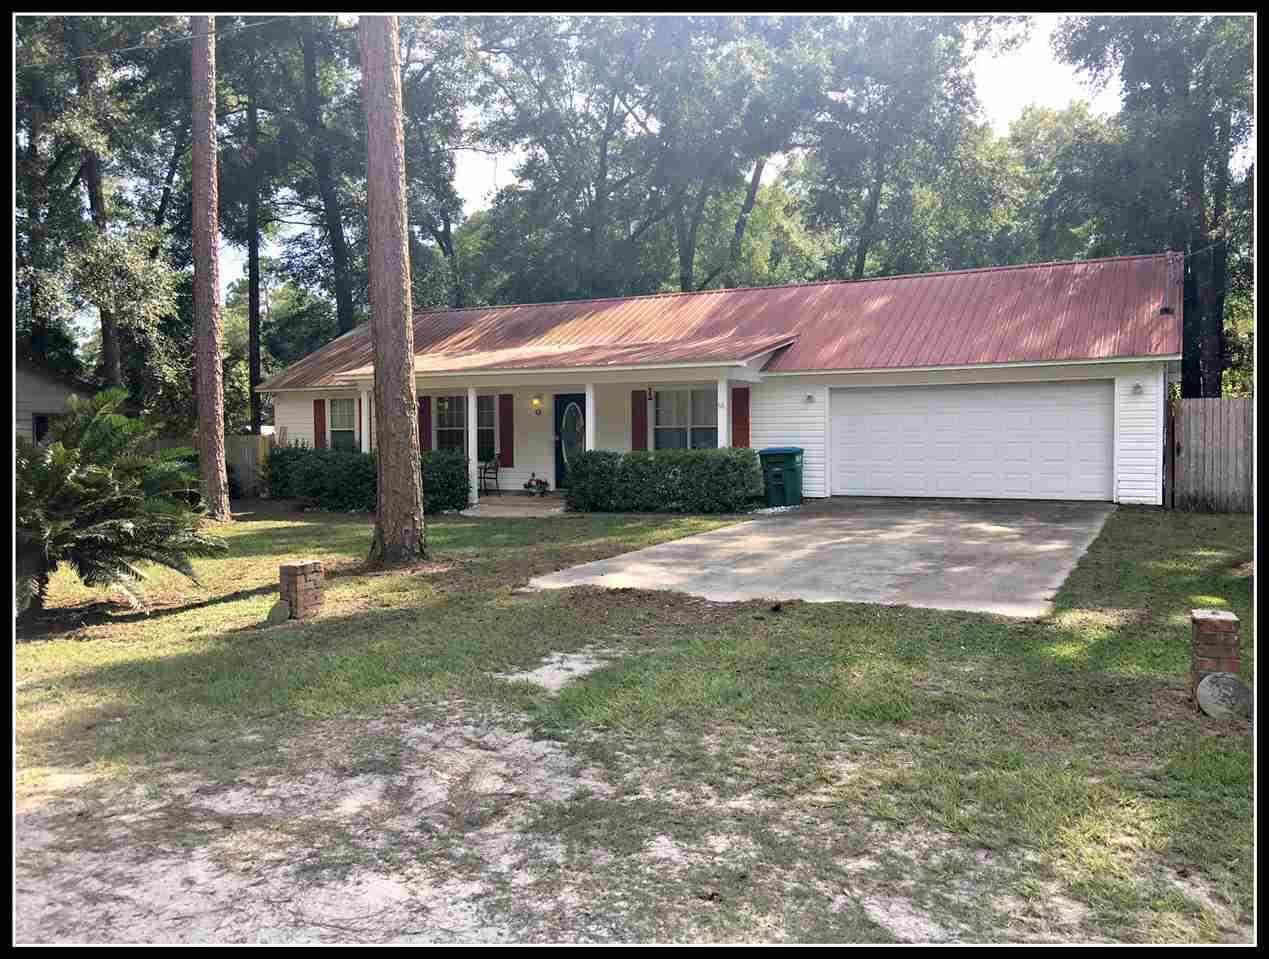 66 EJ Stringer Road, Crawfordville, FL 32327 - MLS#: 332057